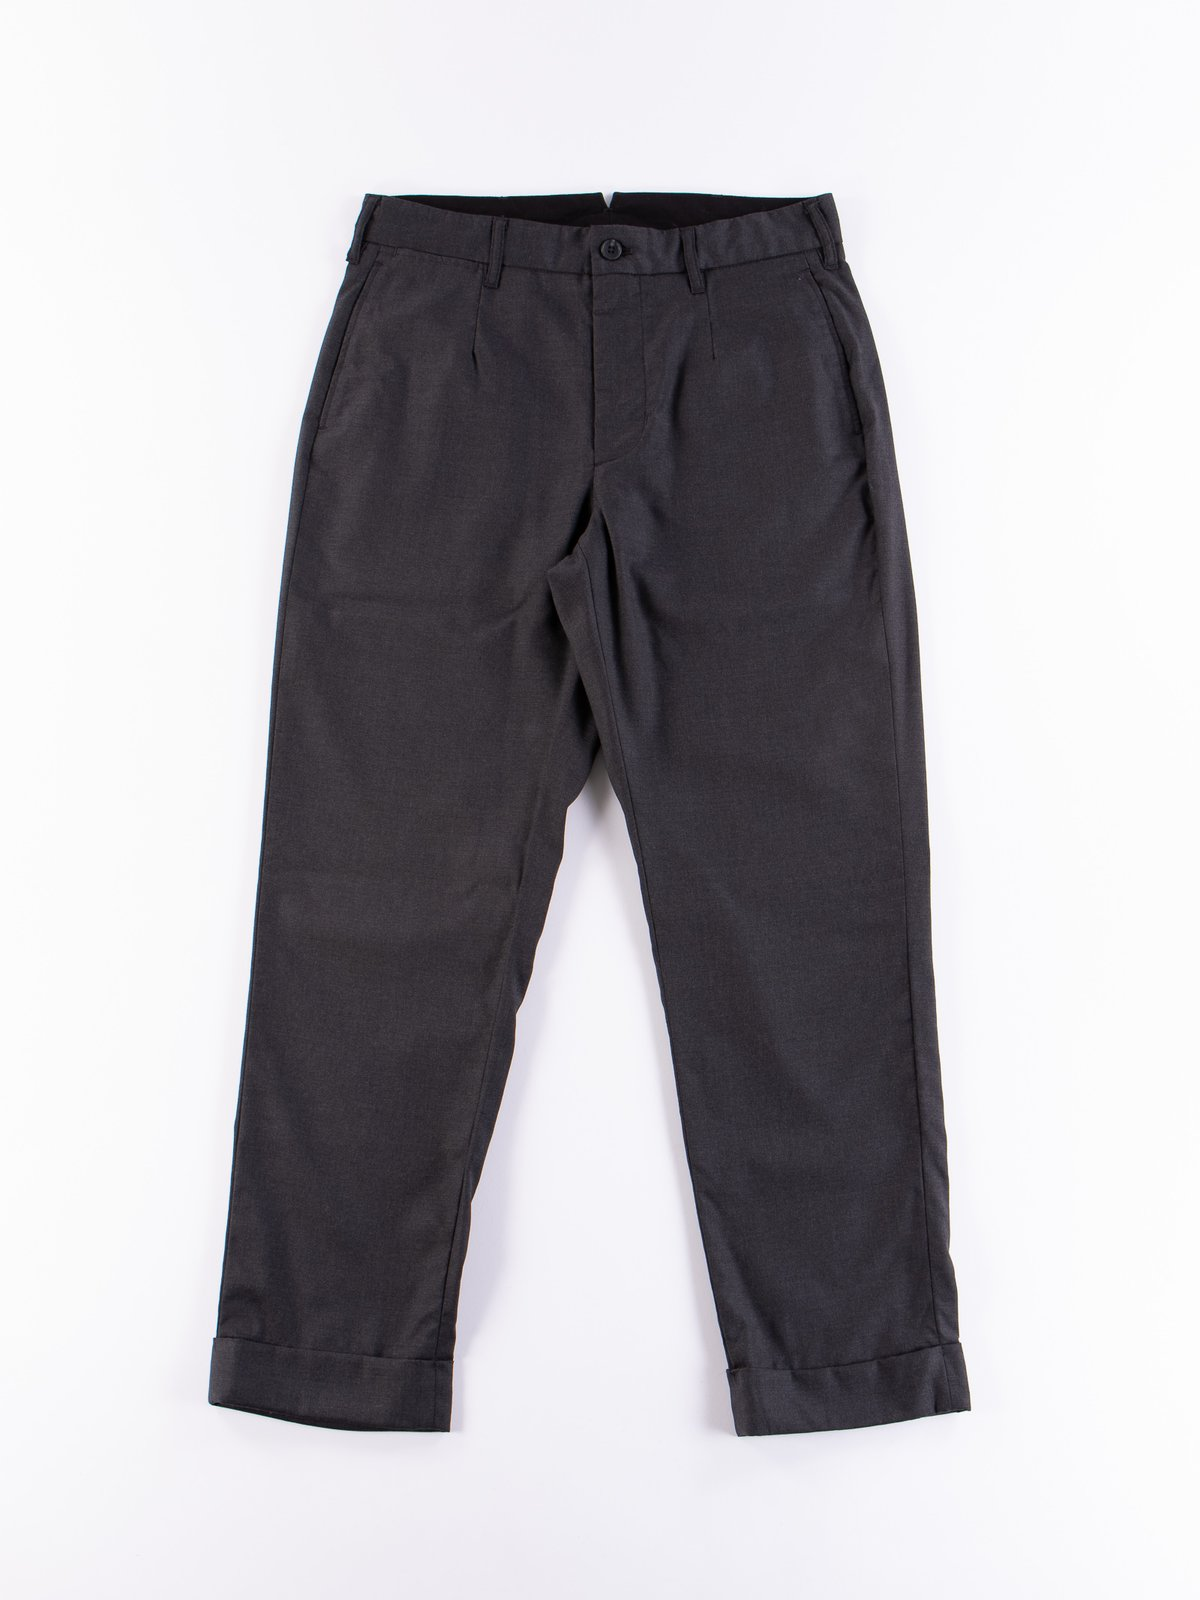 Charcoal Worsted Wool Gabardine Andover Pant - Image 1